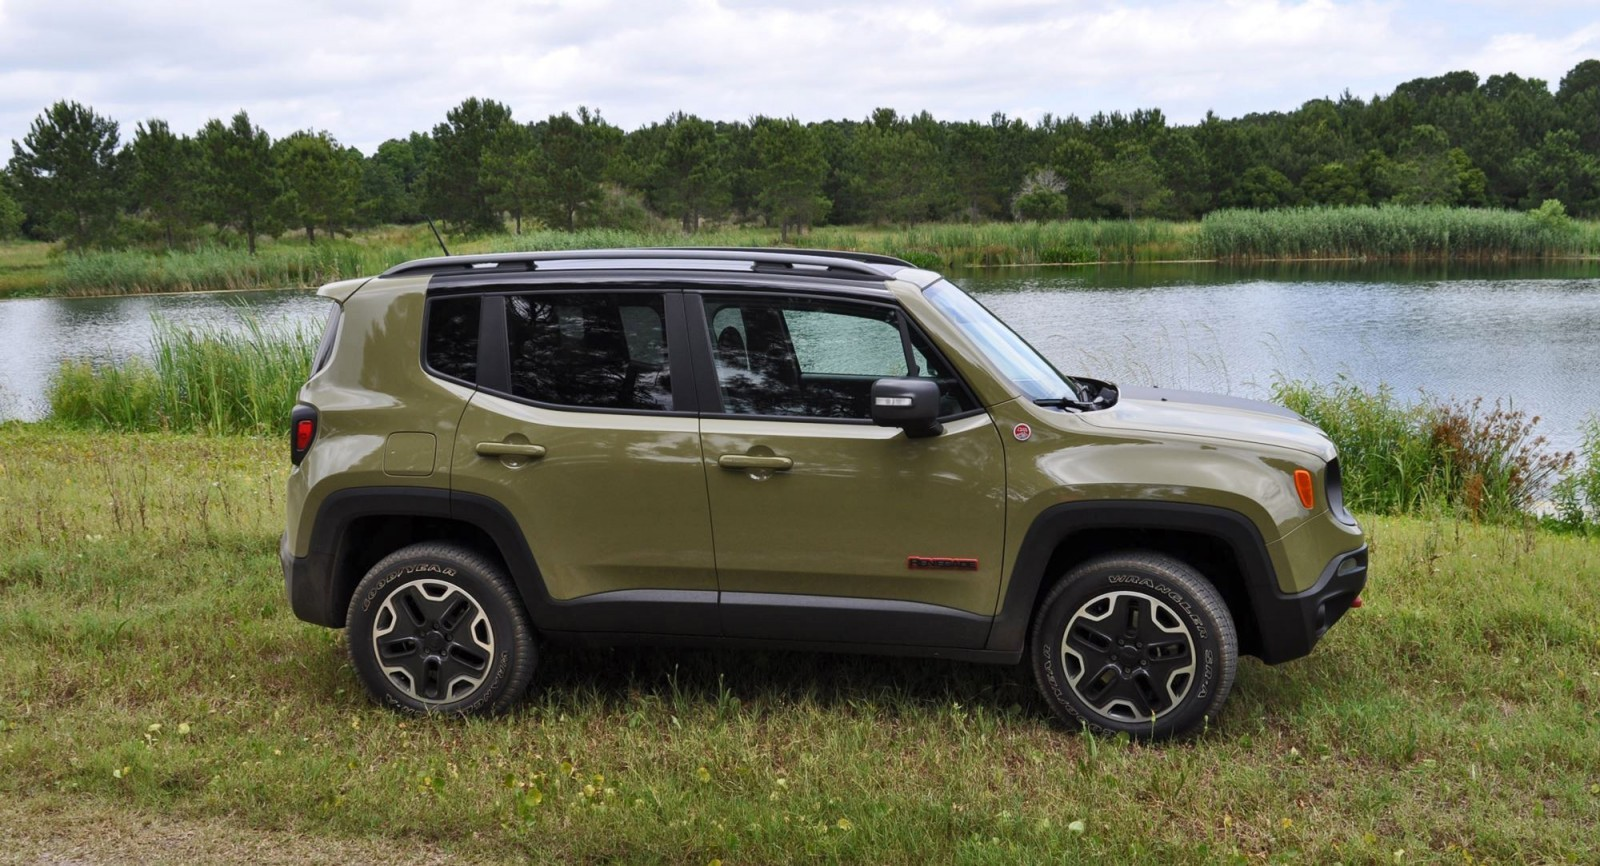 2015 jeep renegade trailhawk review 8. Black Bedroom Furniture Sets. Home Design Ideas